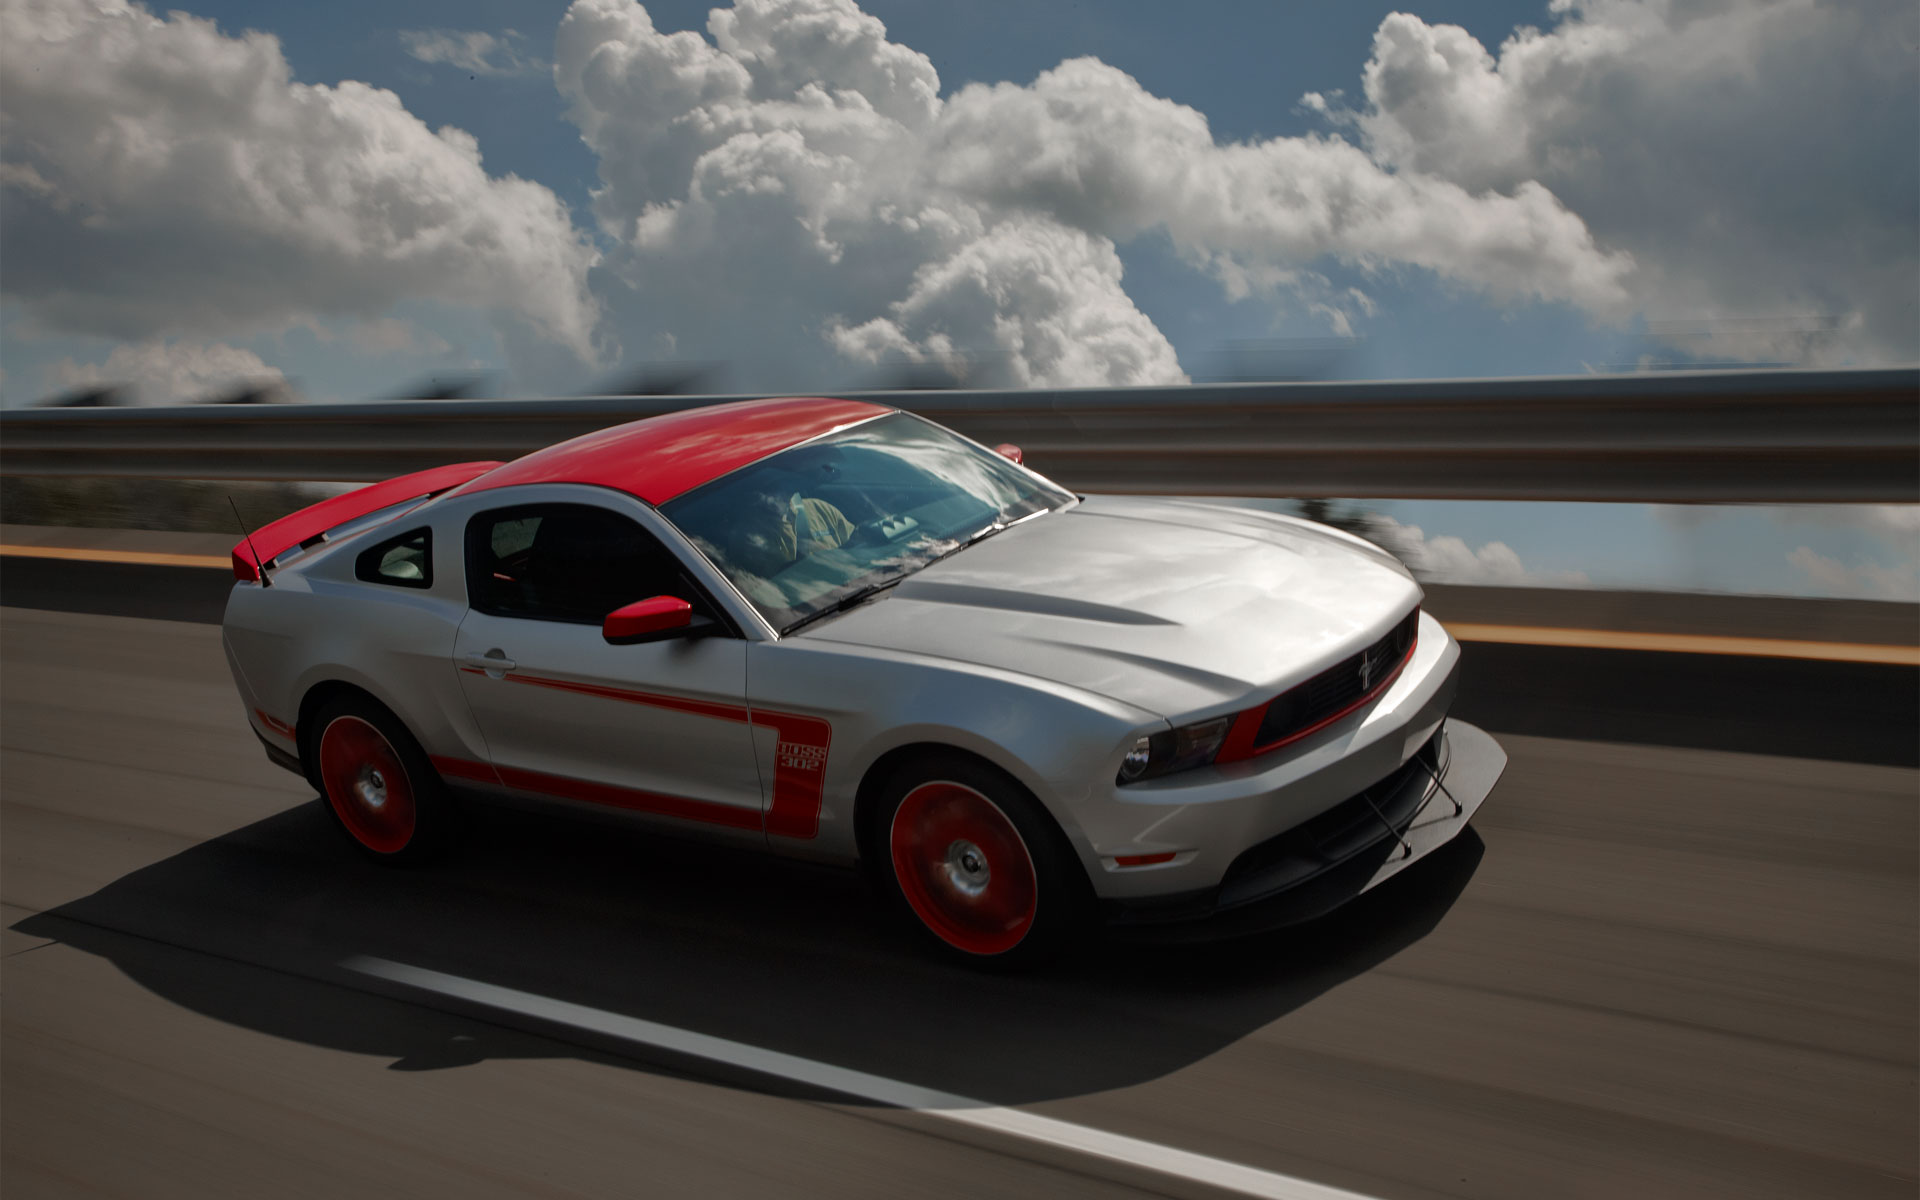 Top gear muscle cars episode released feb 21 2012 iakobou ford mustang boss 302 publicscrutiny